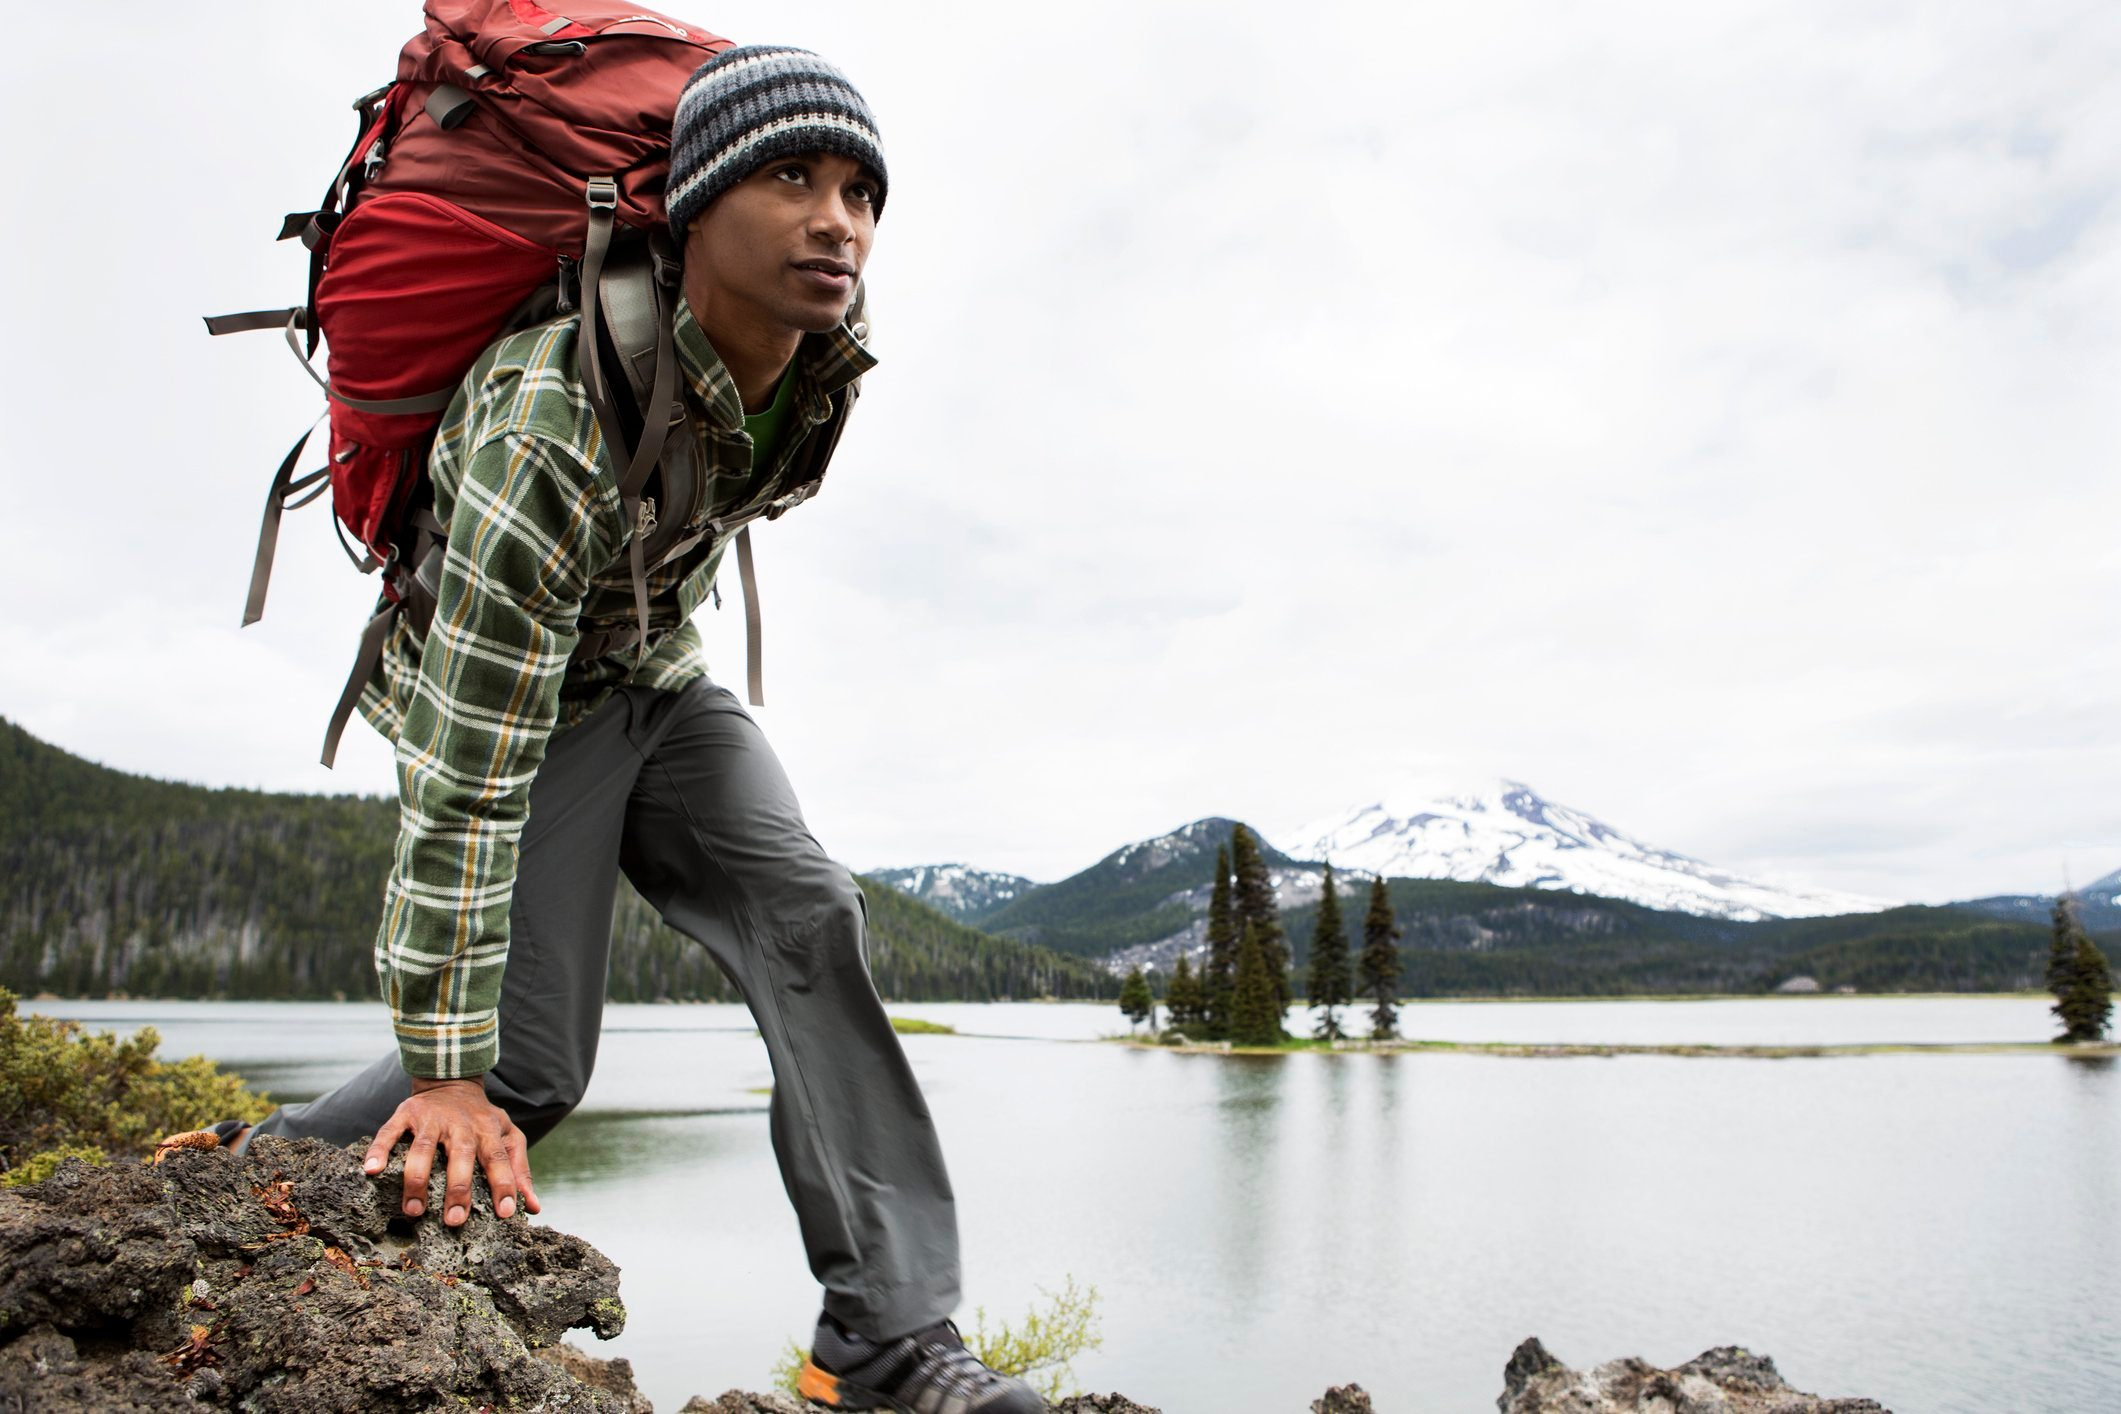 A man hiking with a backpack.